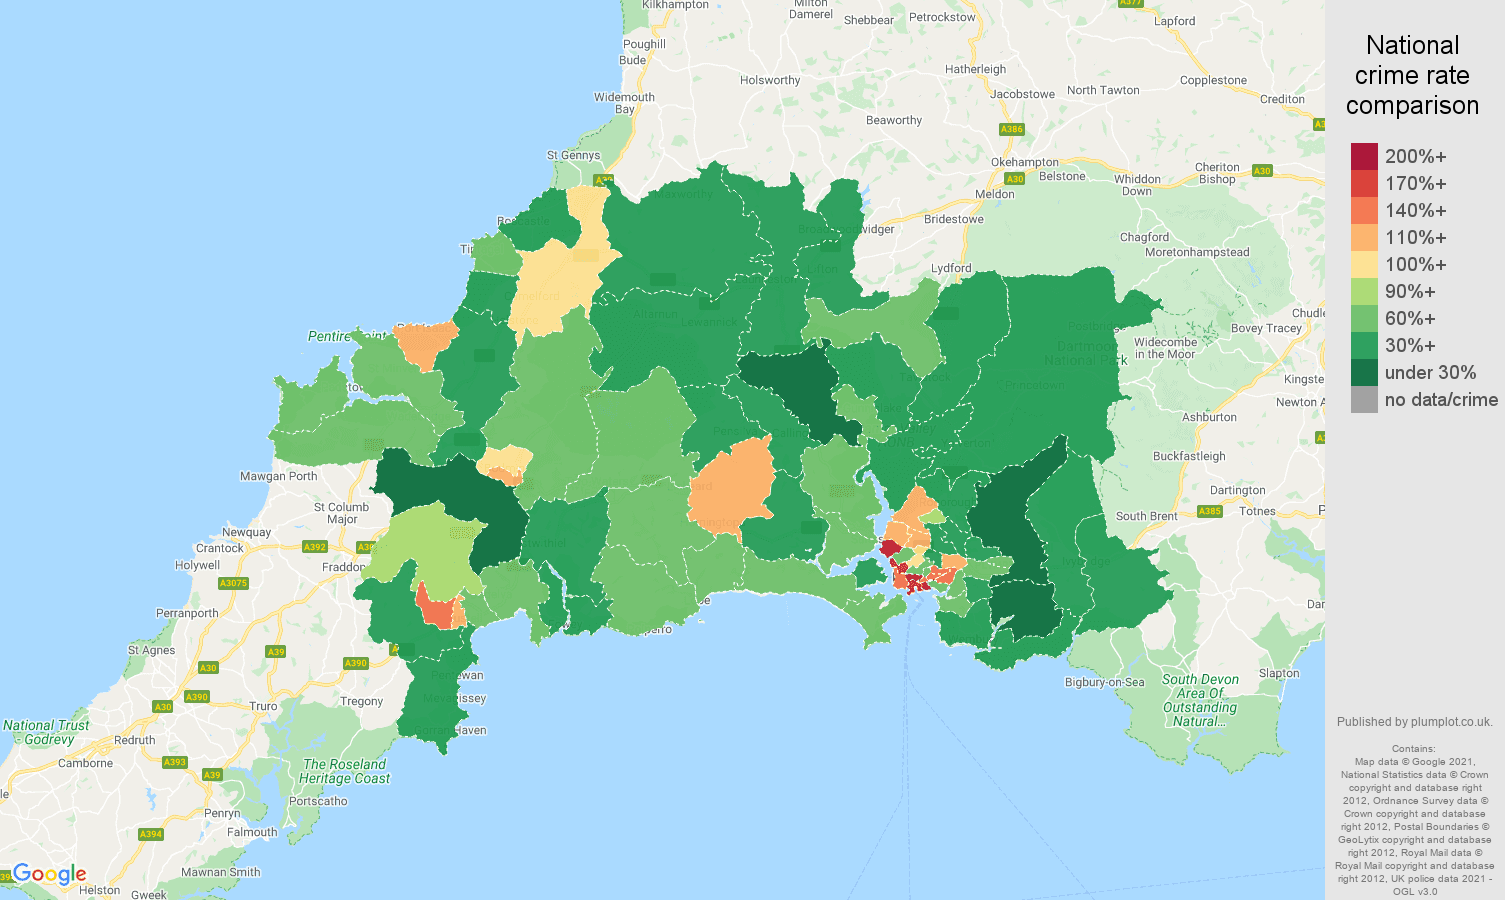 Plymouth antisocial behaviour crime rate comparison map